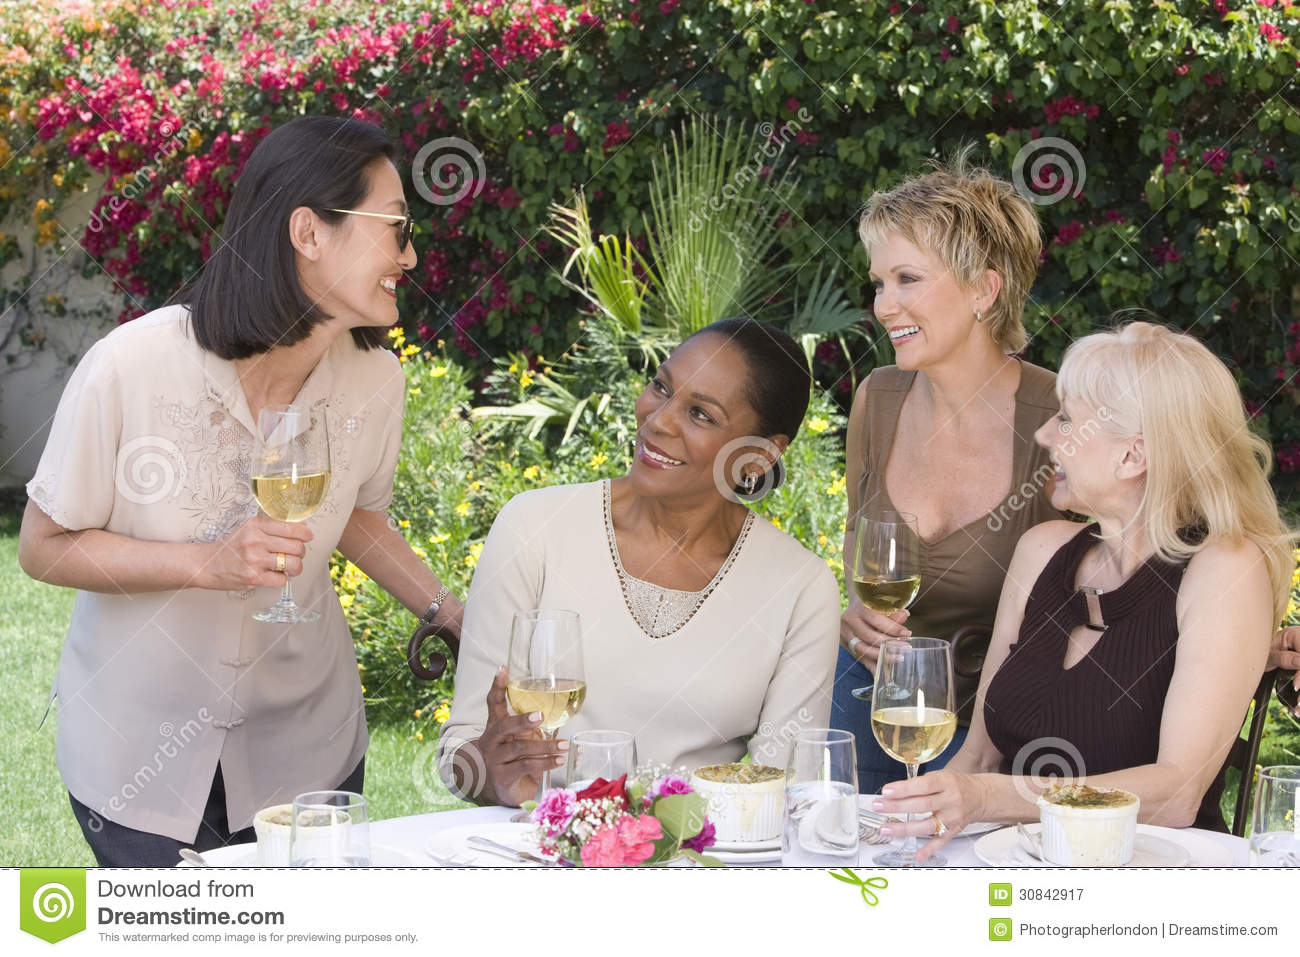 Women With Wine Glasses Chatting At Garden Party